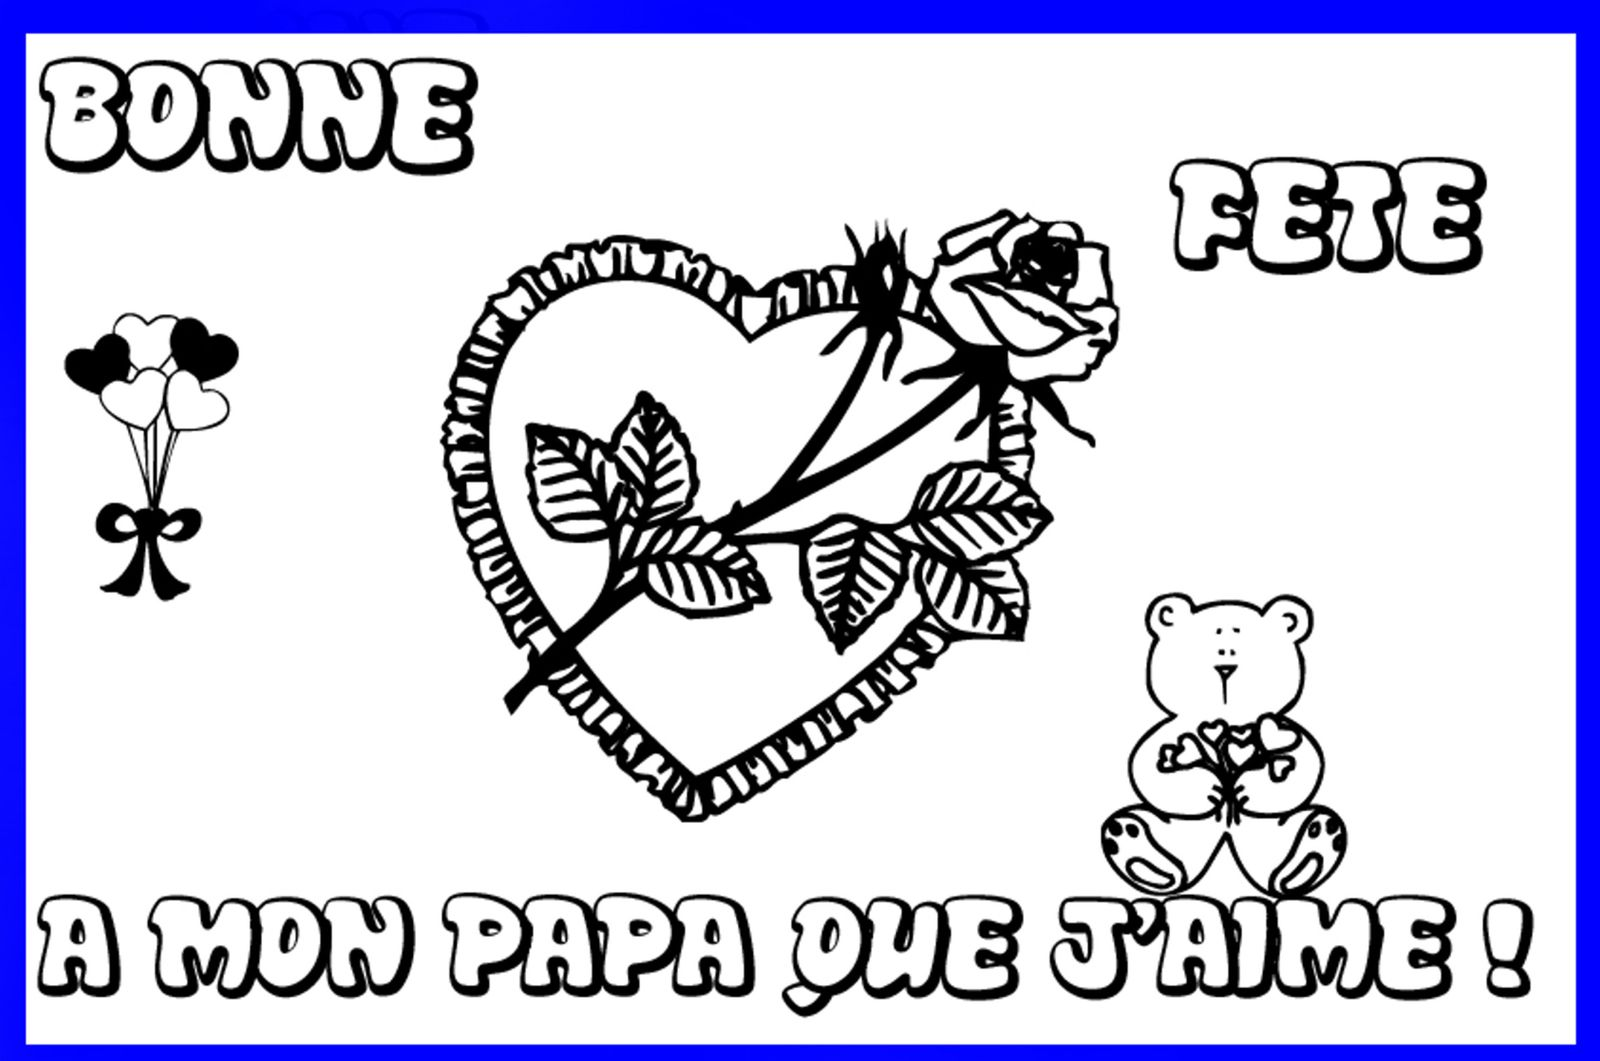 fªtes m¨res PAPA FATHER p¨re coloriage po¨me carte enfant bonne fªte ange elfes fée maman carte card po¨me